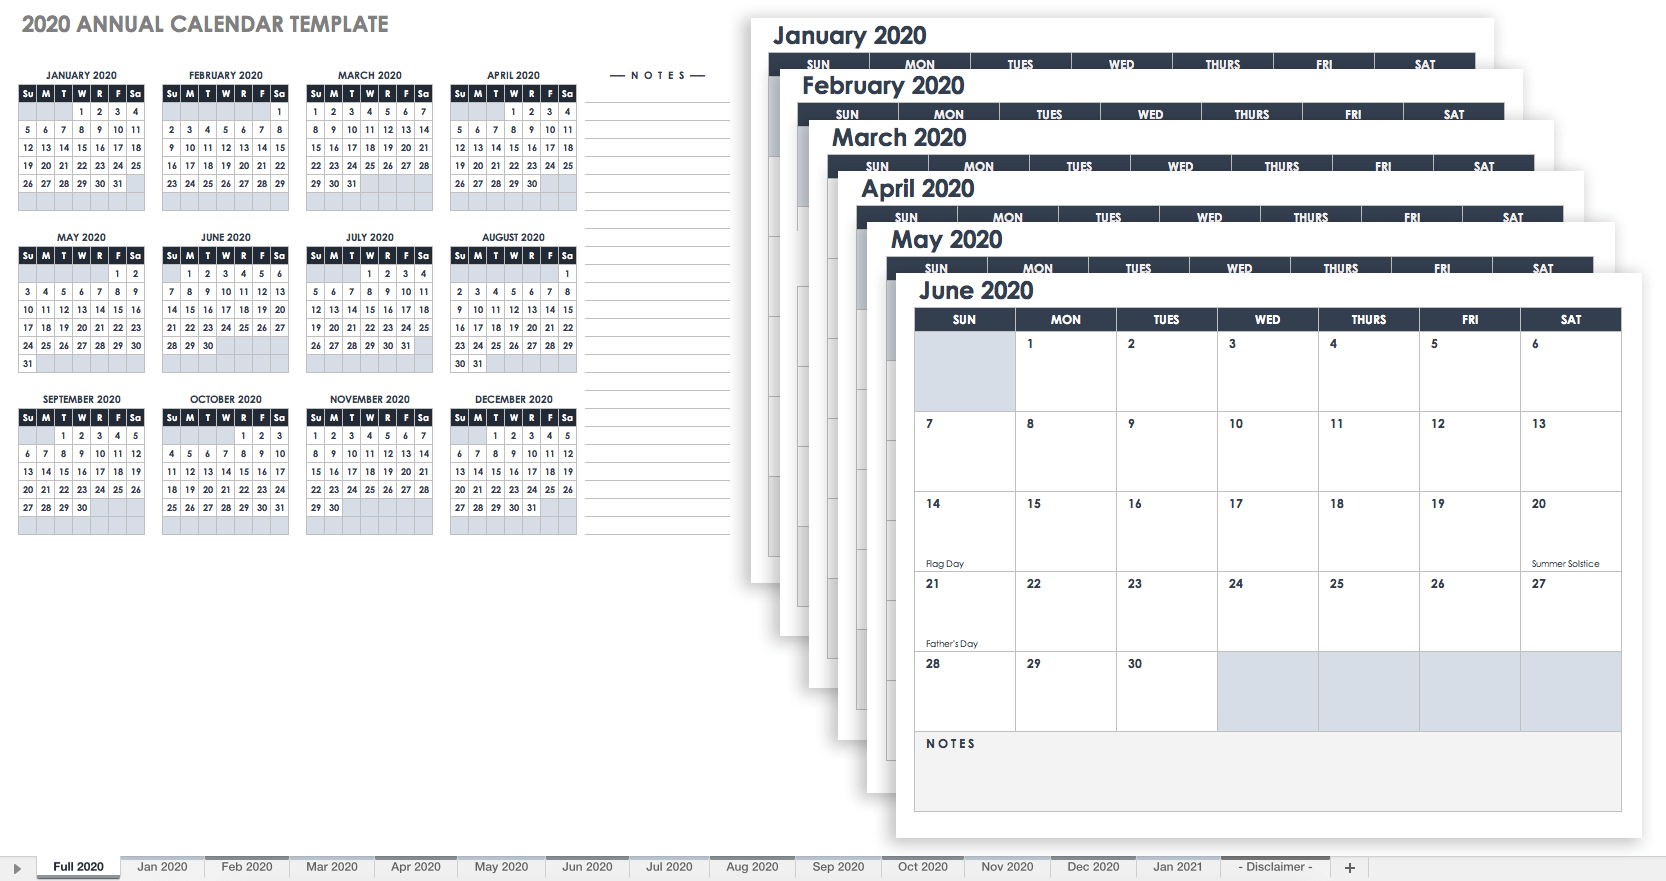 Free, Printable Excel Calendar Templates For 2019 & On | Smartsheet intended for 3 Month Calendar Template Printable